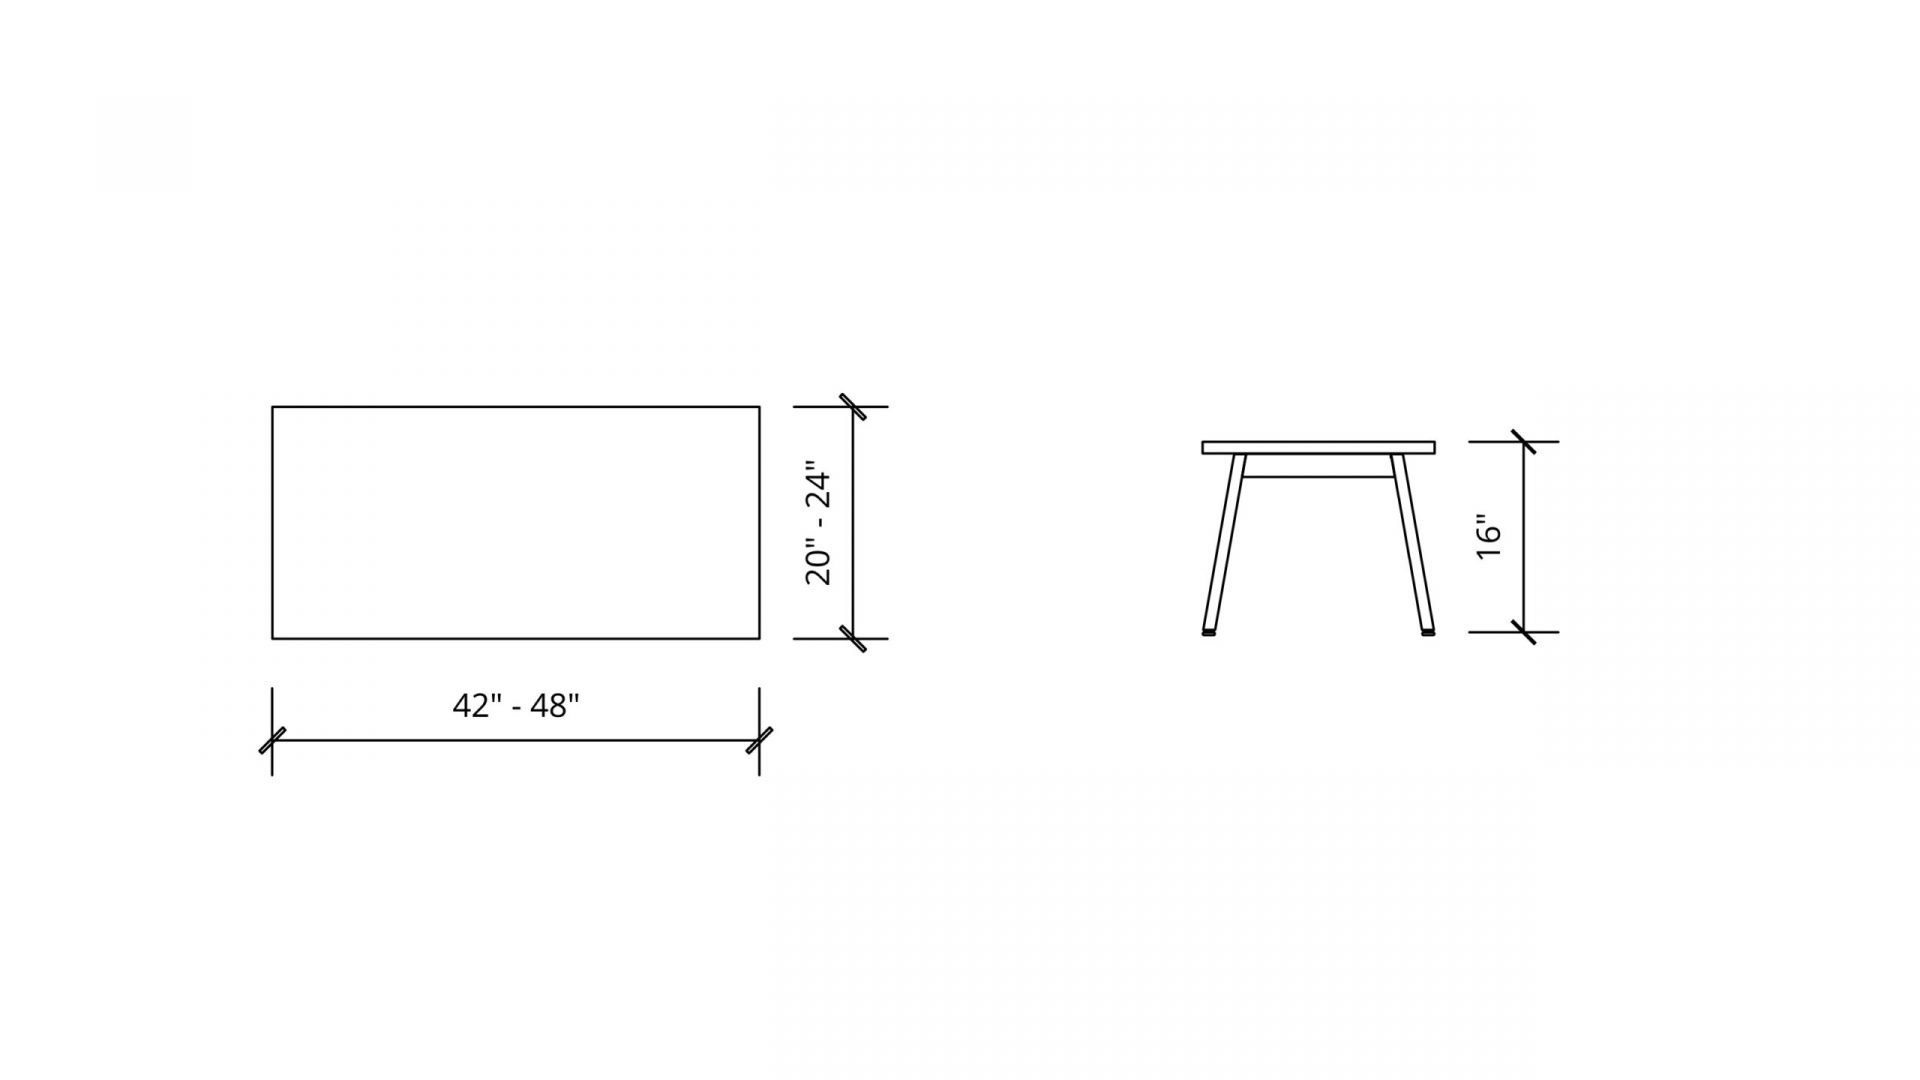 Imperial Dimensions of Rectangular Coffee Table 1657